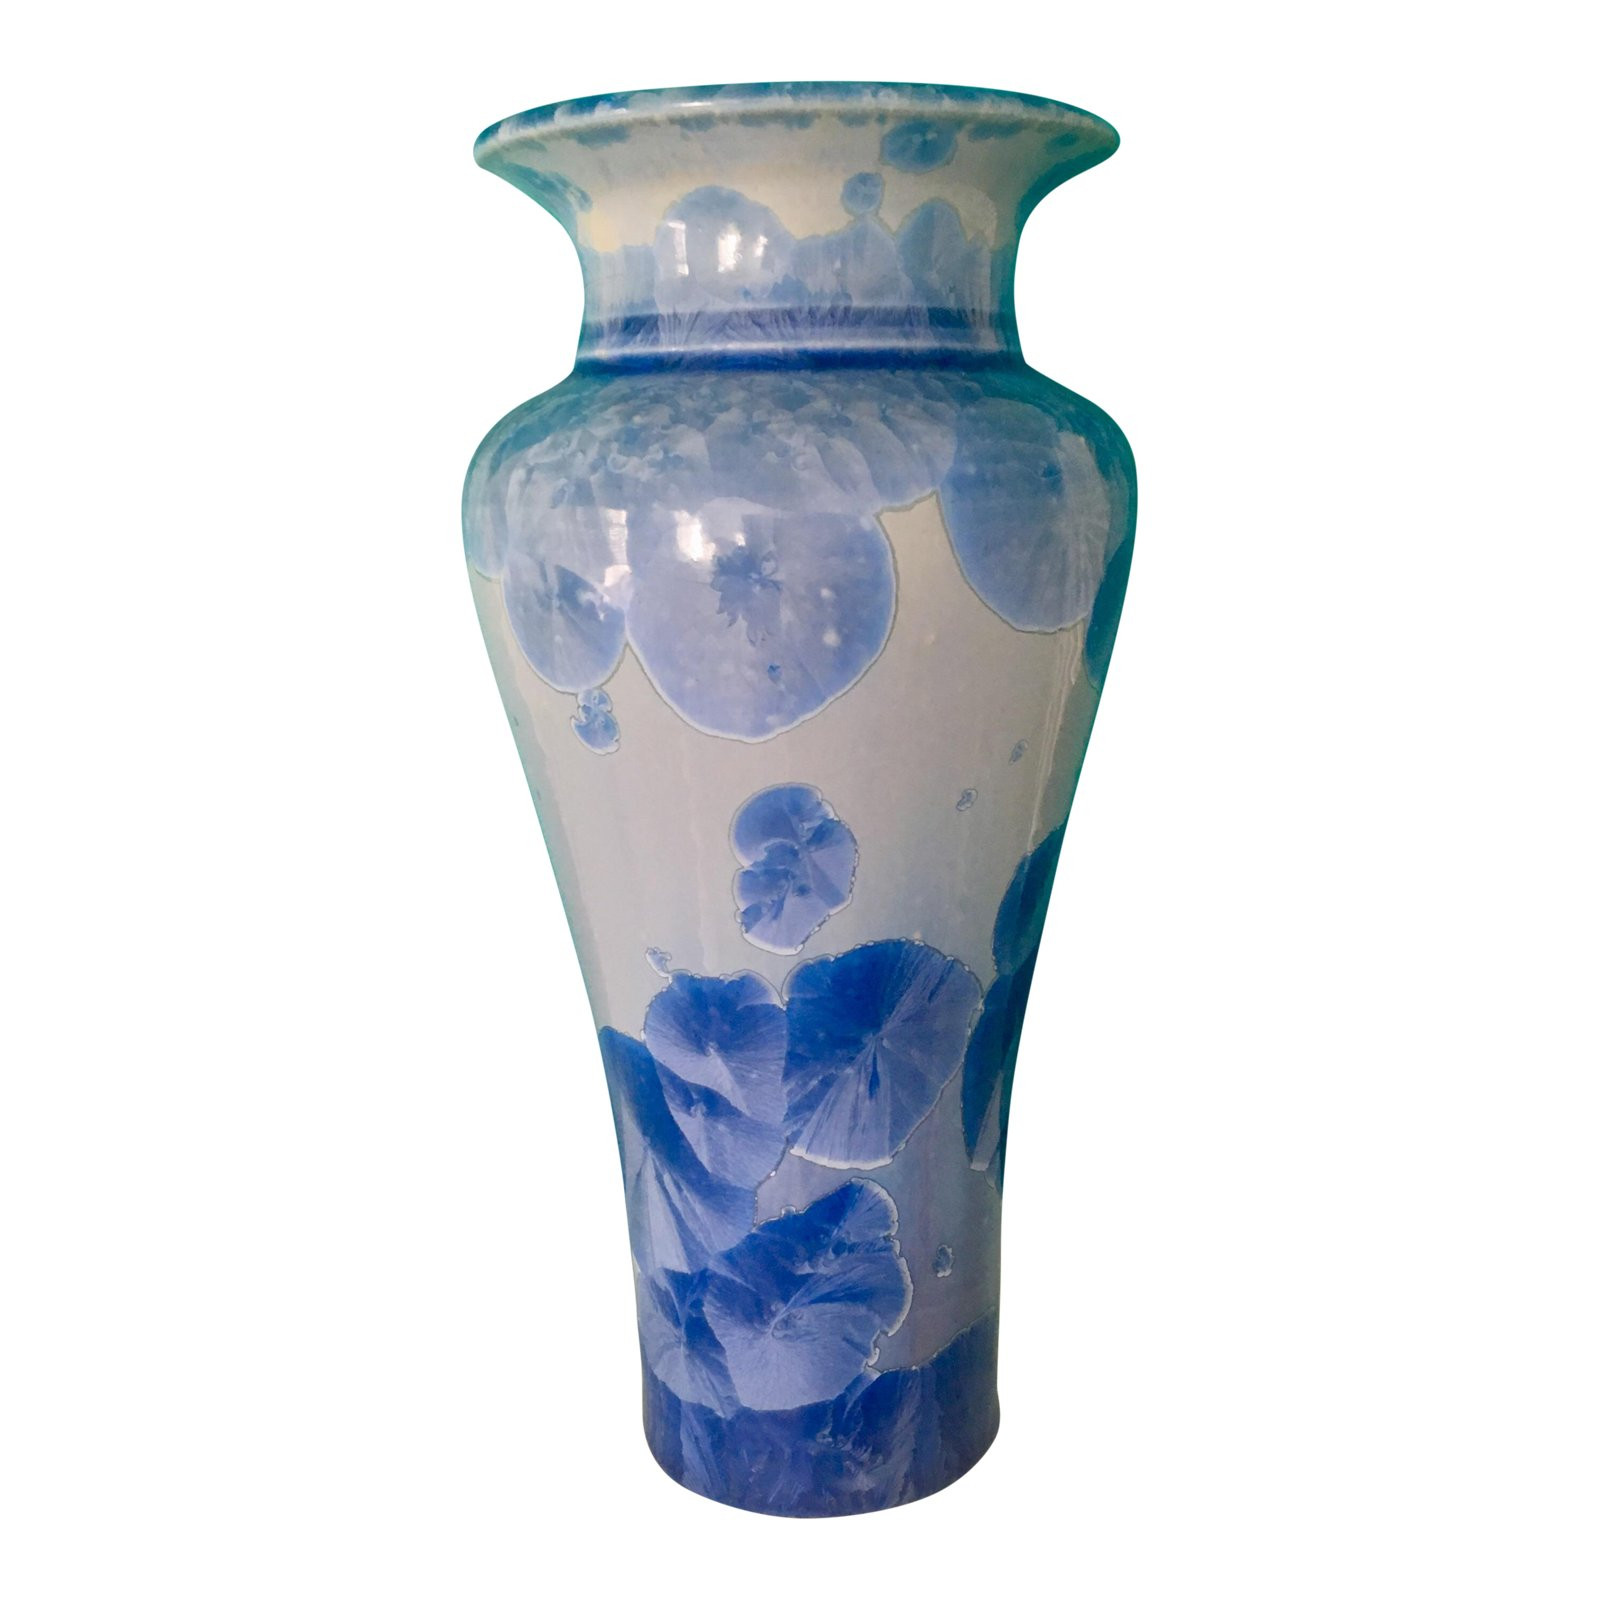 Blue and White Pottery Vases Of Js Feltman Crystalline Pottery Vase Chairish for Jands Feltman Crystalline Pottery Vase 4954